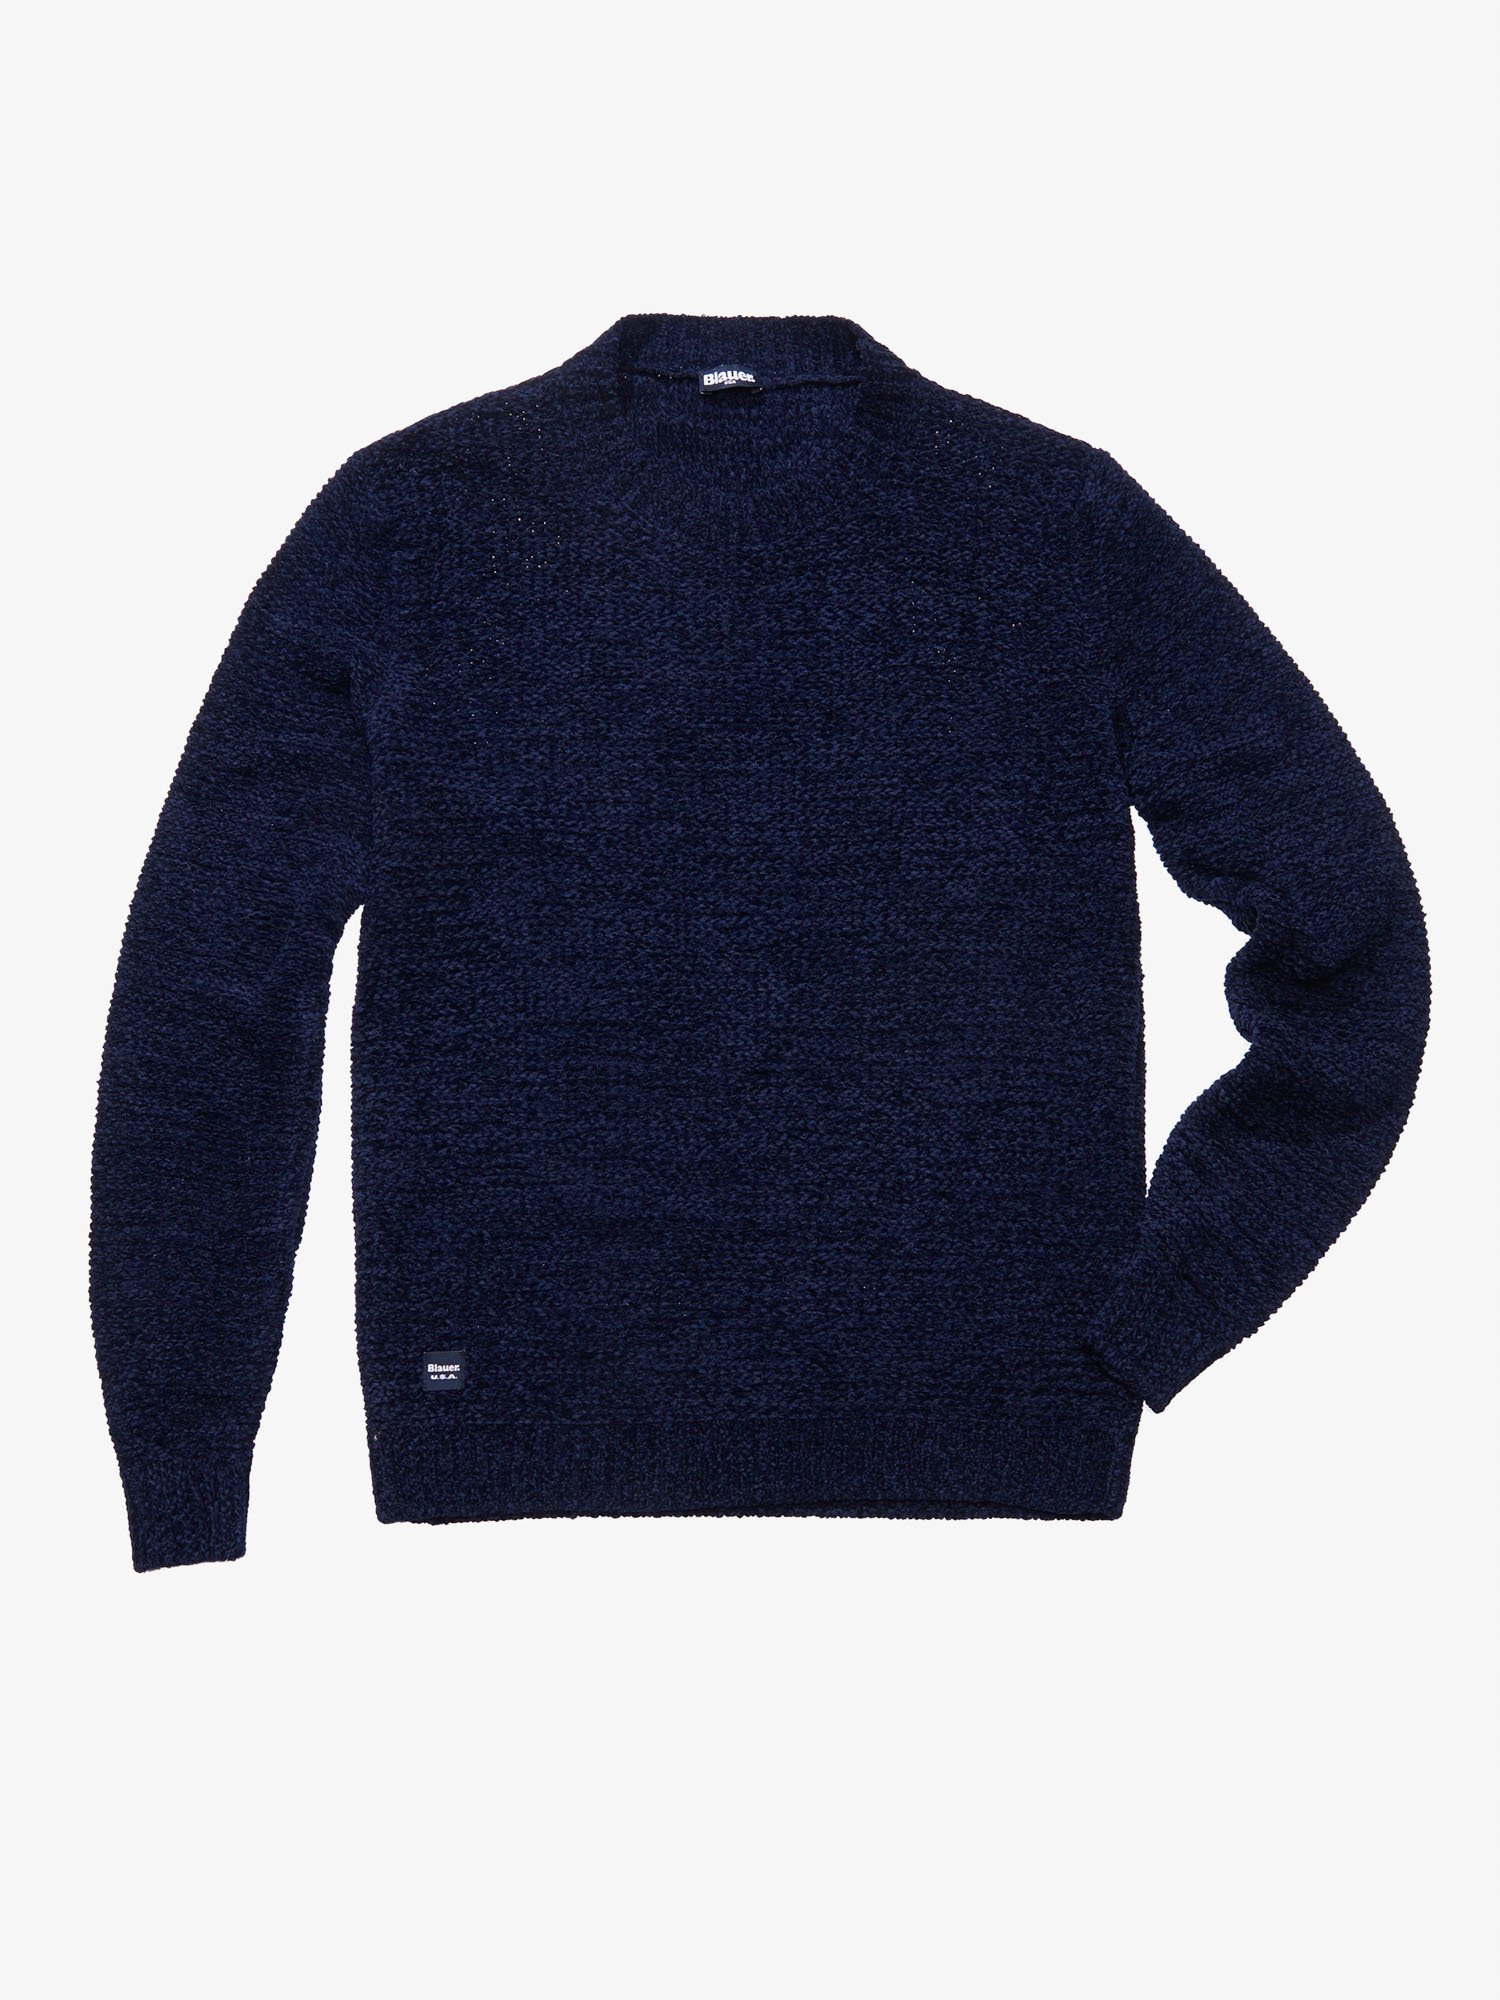 Blauer - CHENILLE SWEATER - Baltic Sea - Blauer